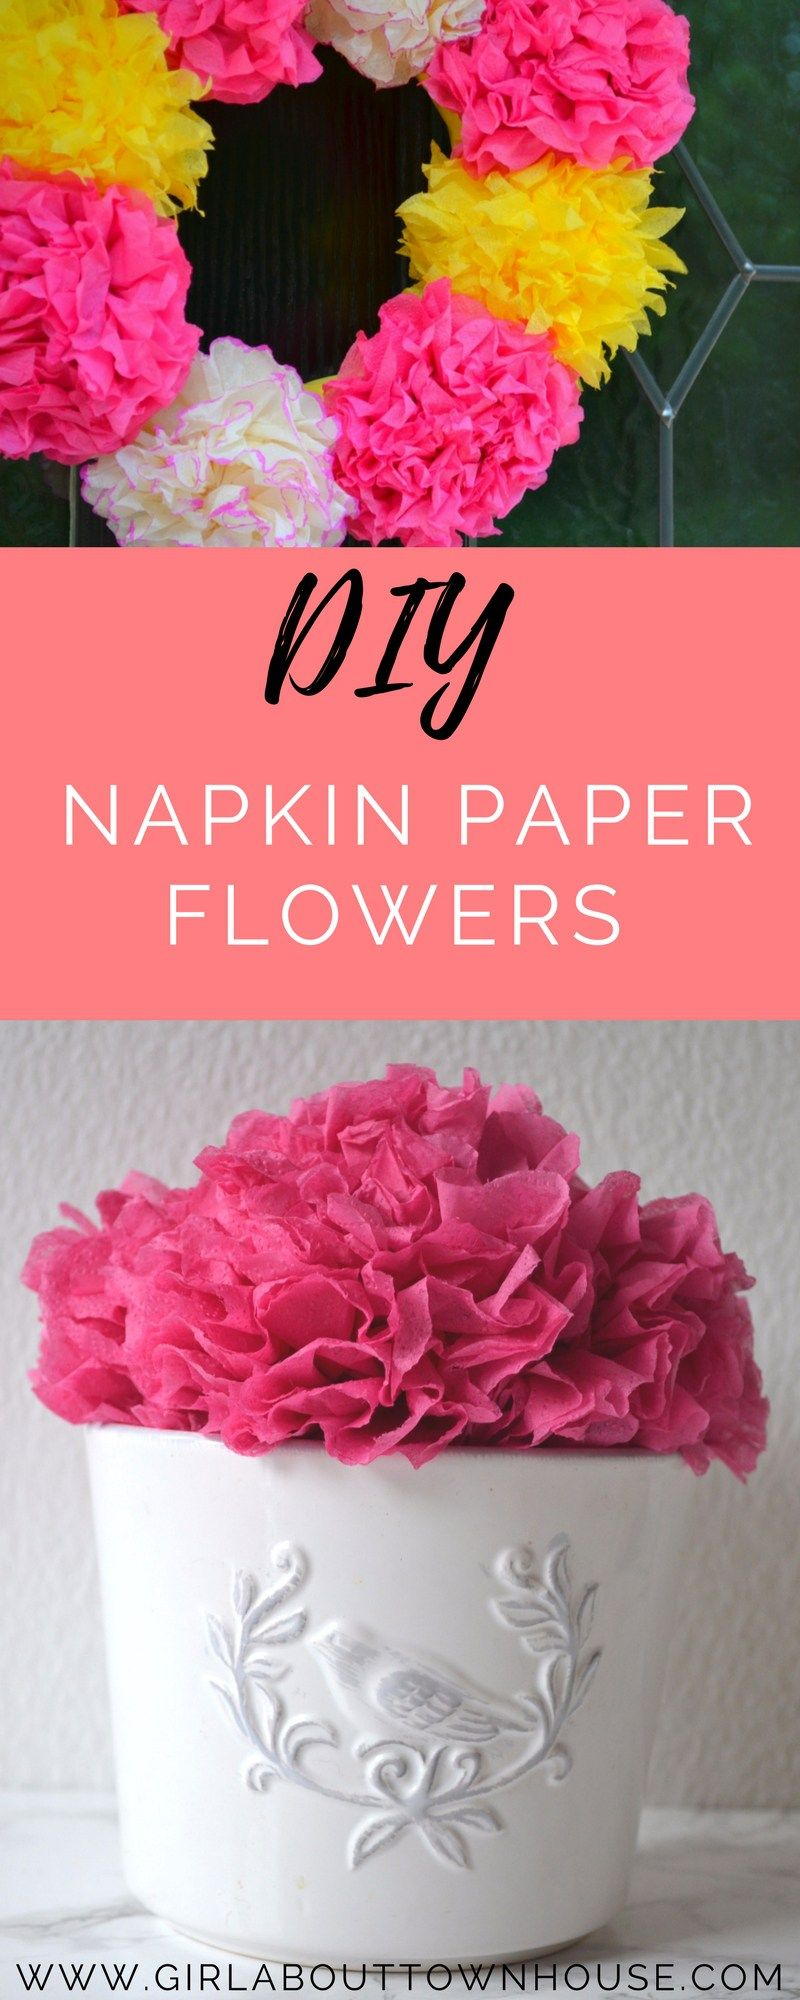 Flower making with napkins wreaths garlands crepe paper super easy paper flowers izmirmasajfo